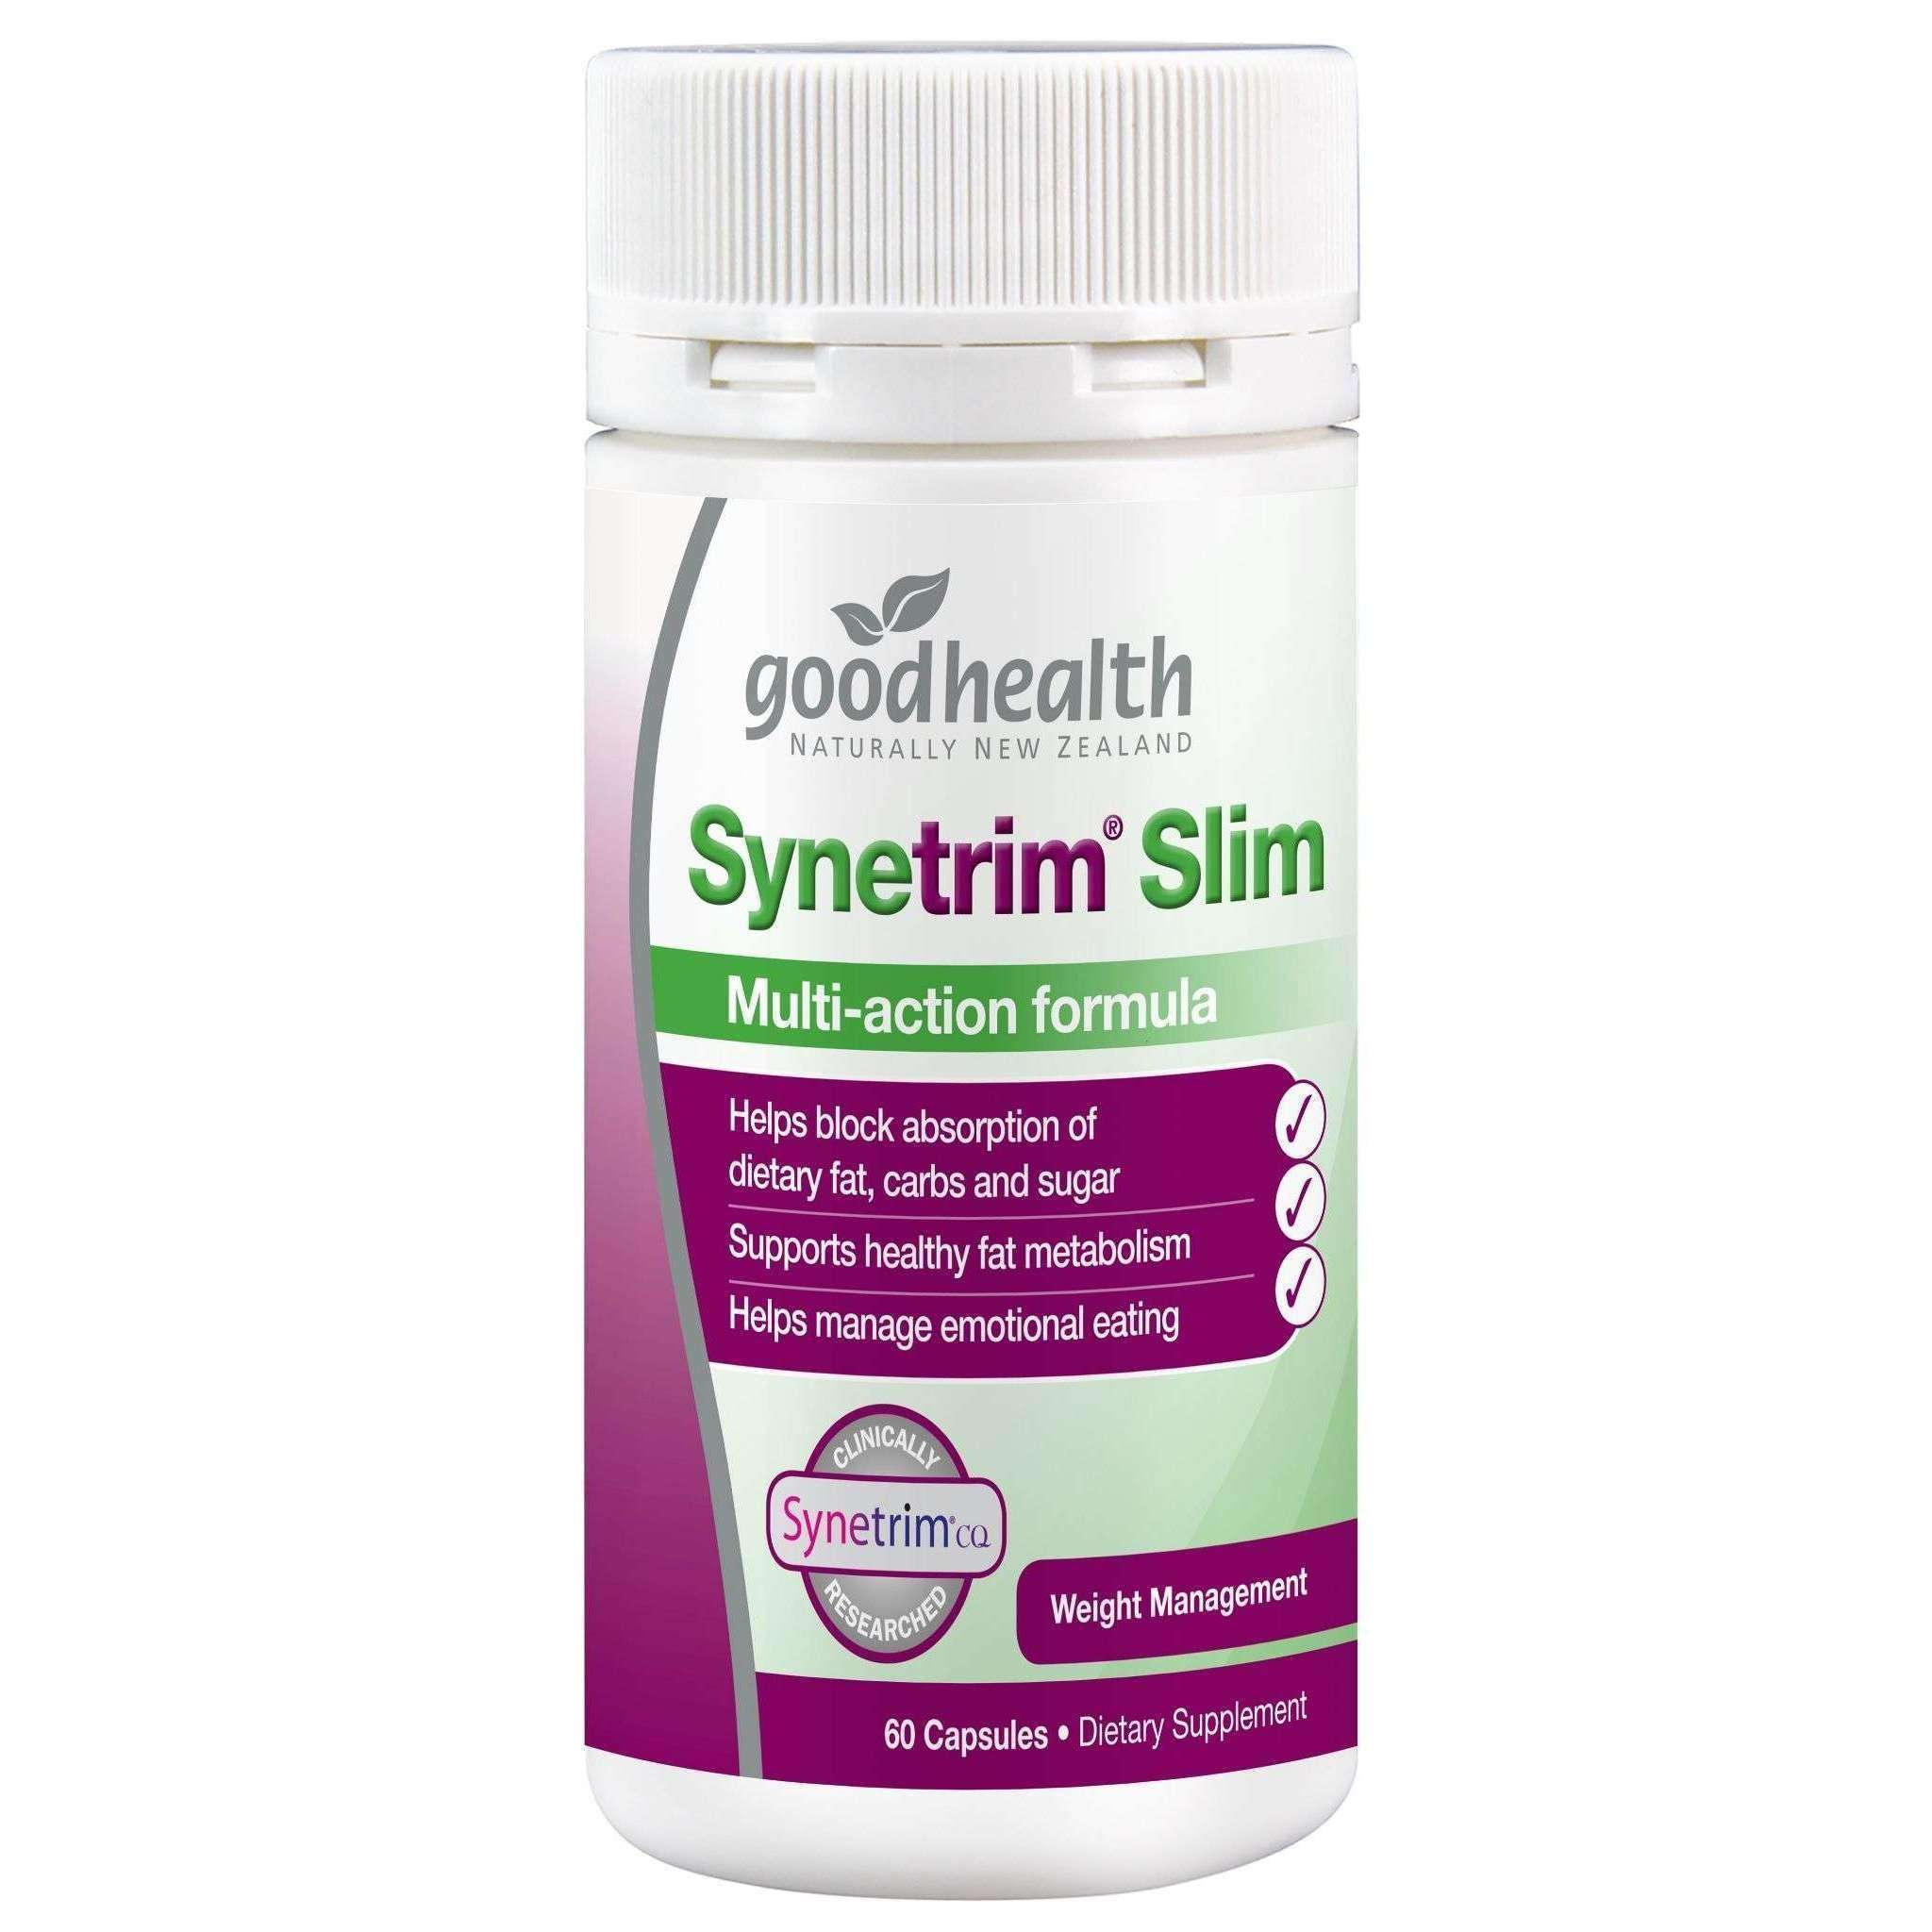 Good Health Synetrim Slim